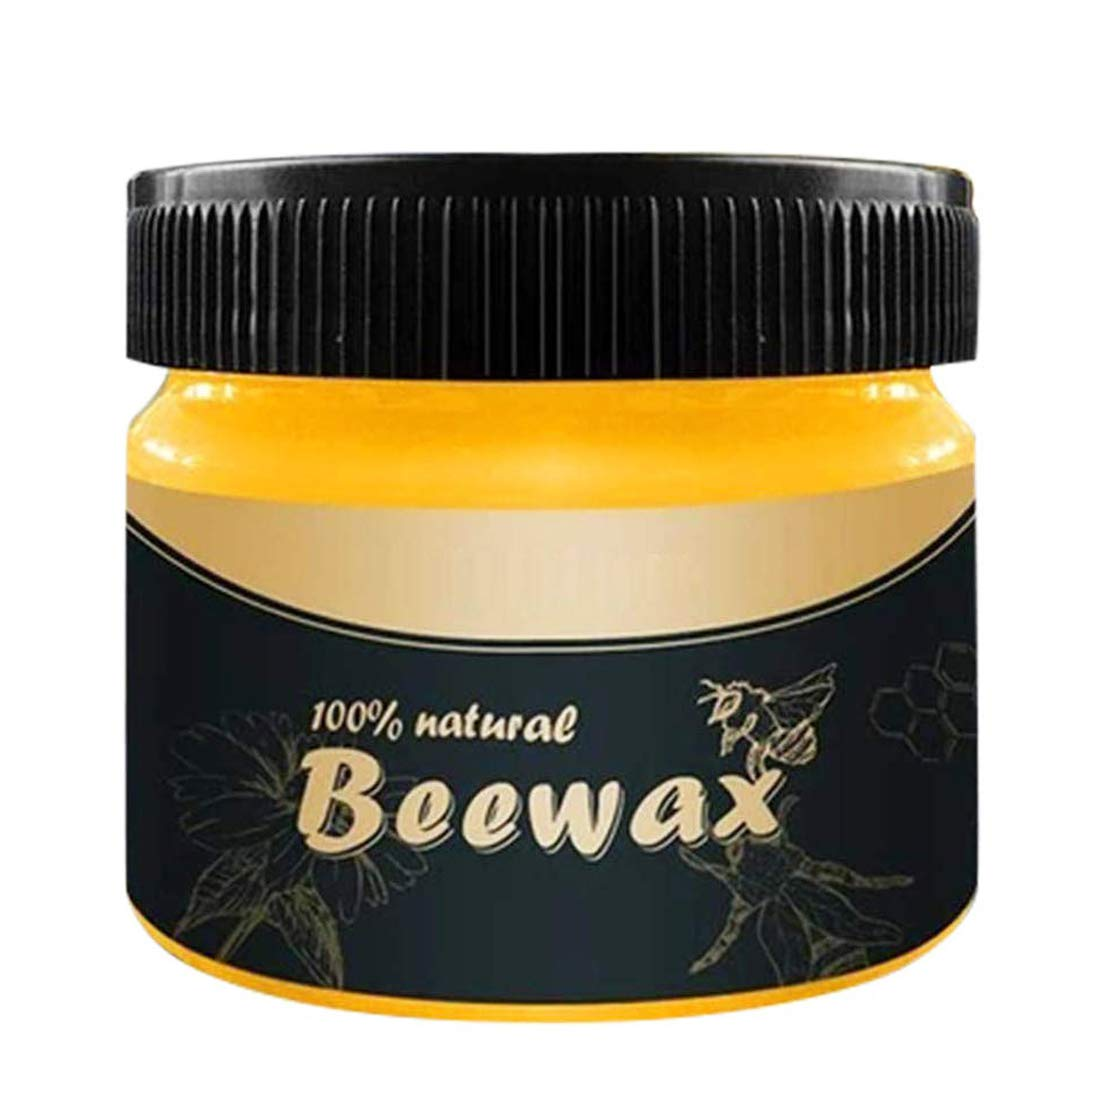 Wood Seasoning Beewax - Traditional Beeswax Polish for Wood & Furniture, All-Purpose Beewax for Wood Cleaner and Polish Wipes, Non Toxic for Furniture to Beautify & Protect